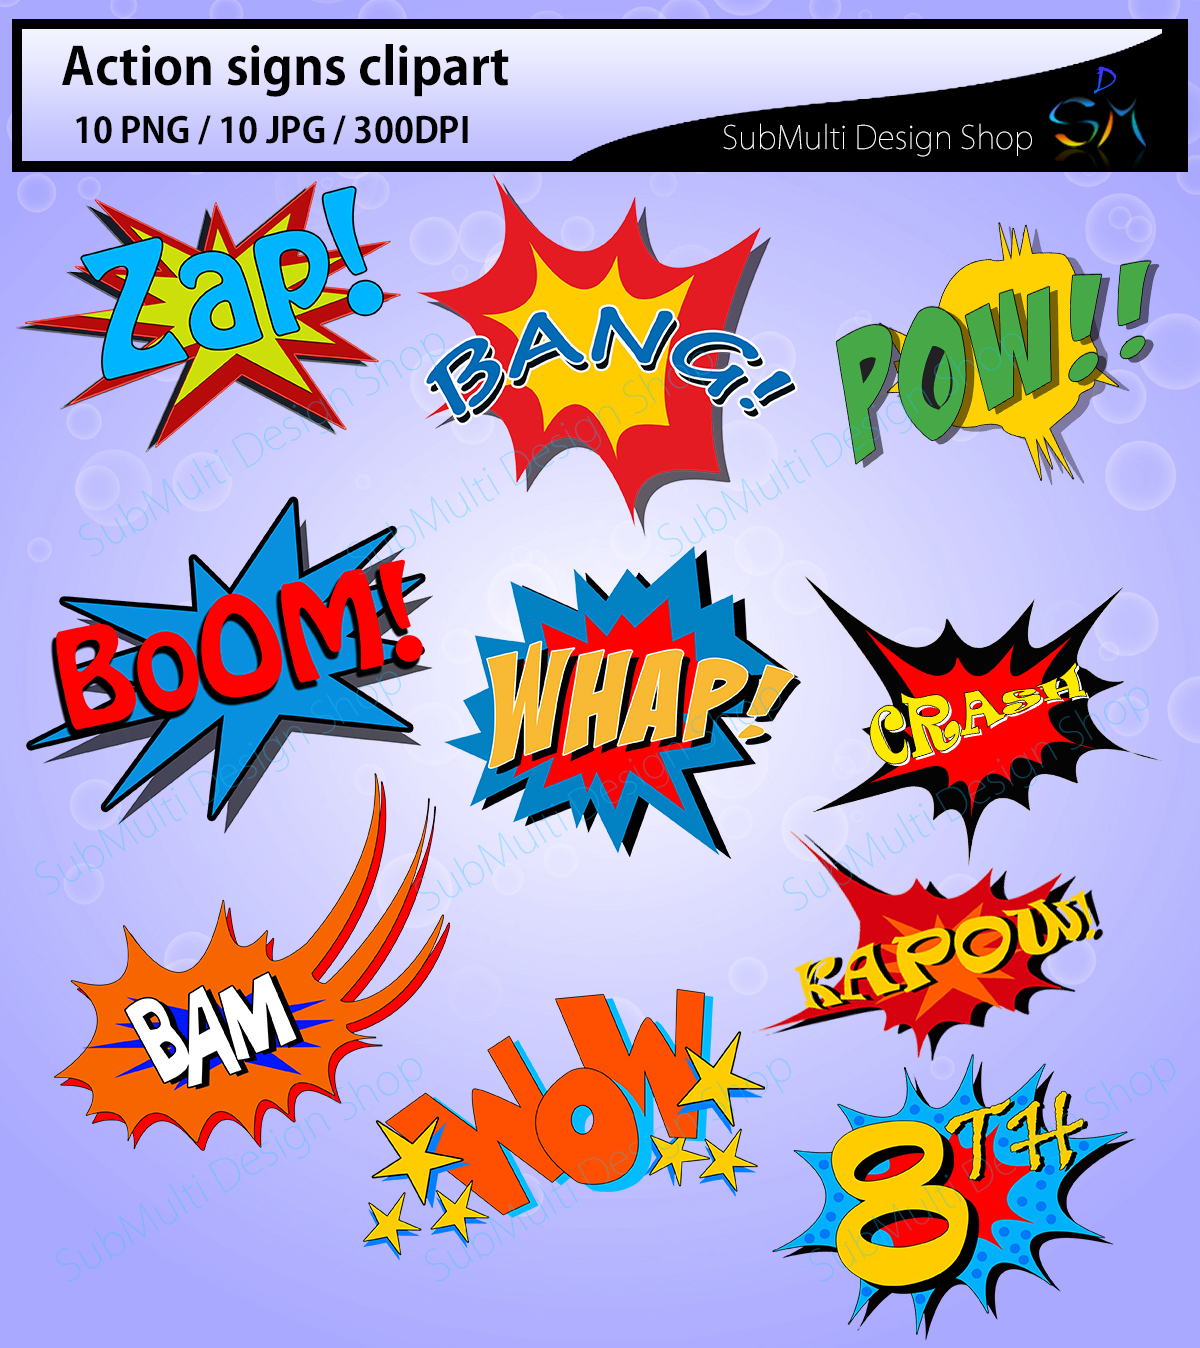 Boom clipart blue. Action signs high quality